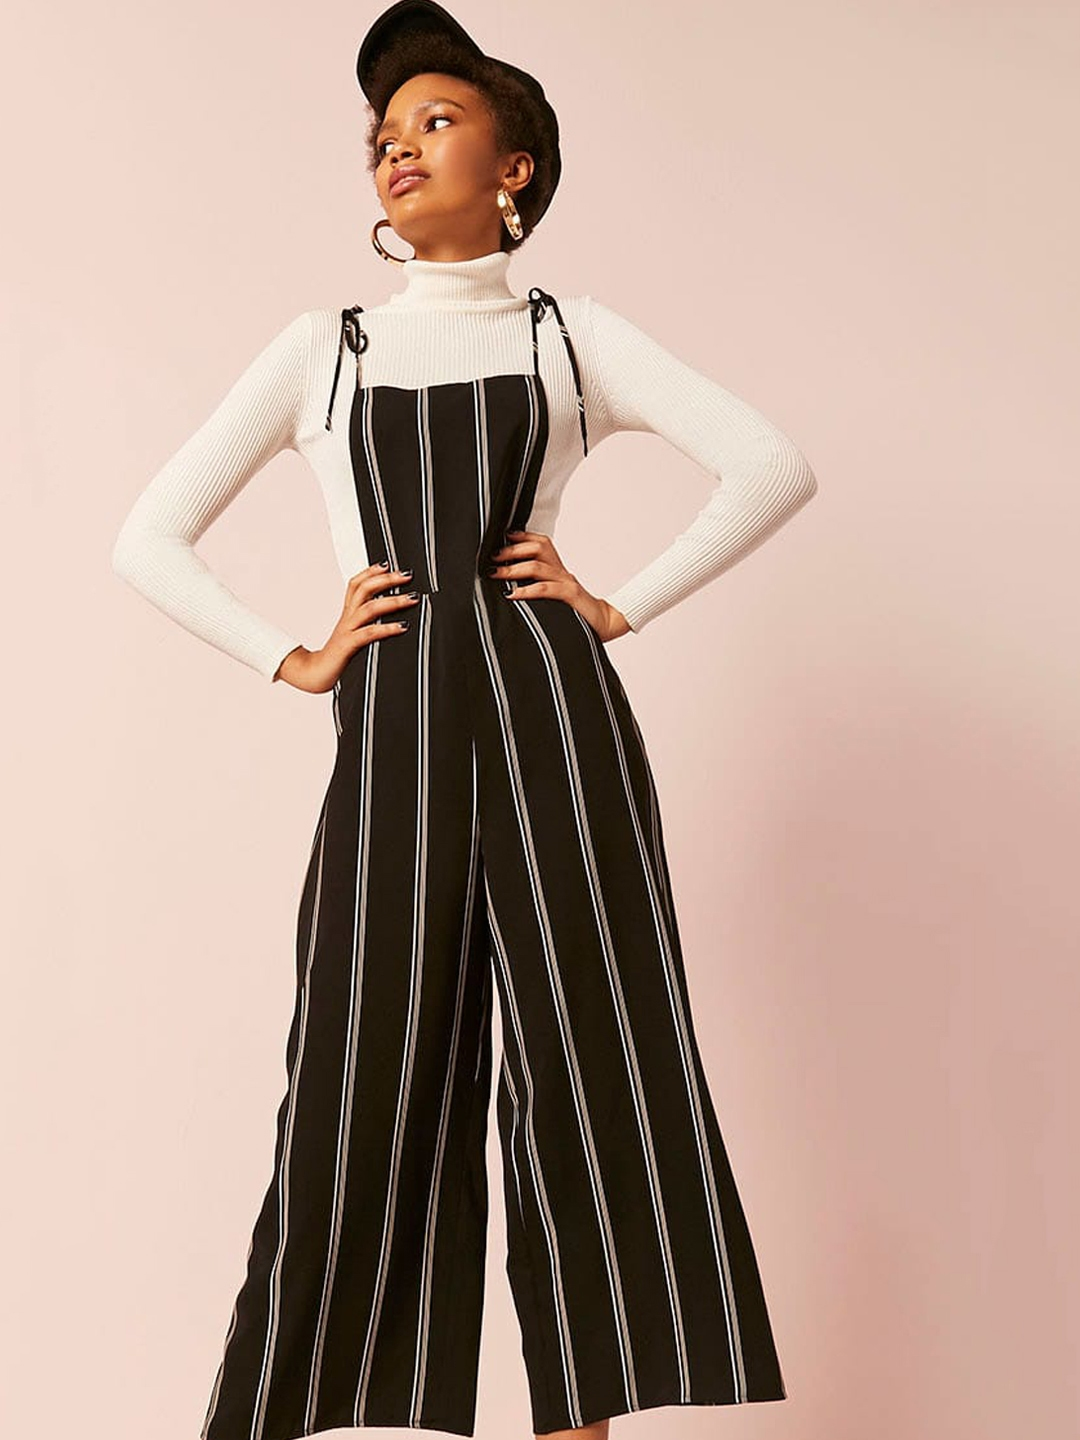 00fdc367cf9 Buy FOREVER 21 Black   White Striped Culotte Jumpsuit - Jumpsuit for ...